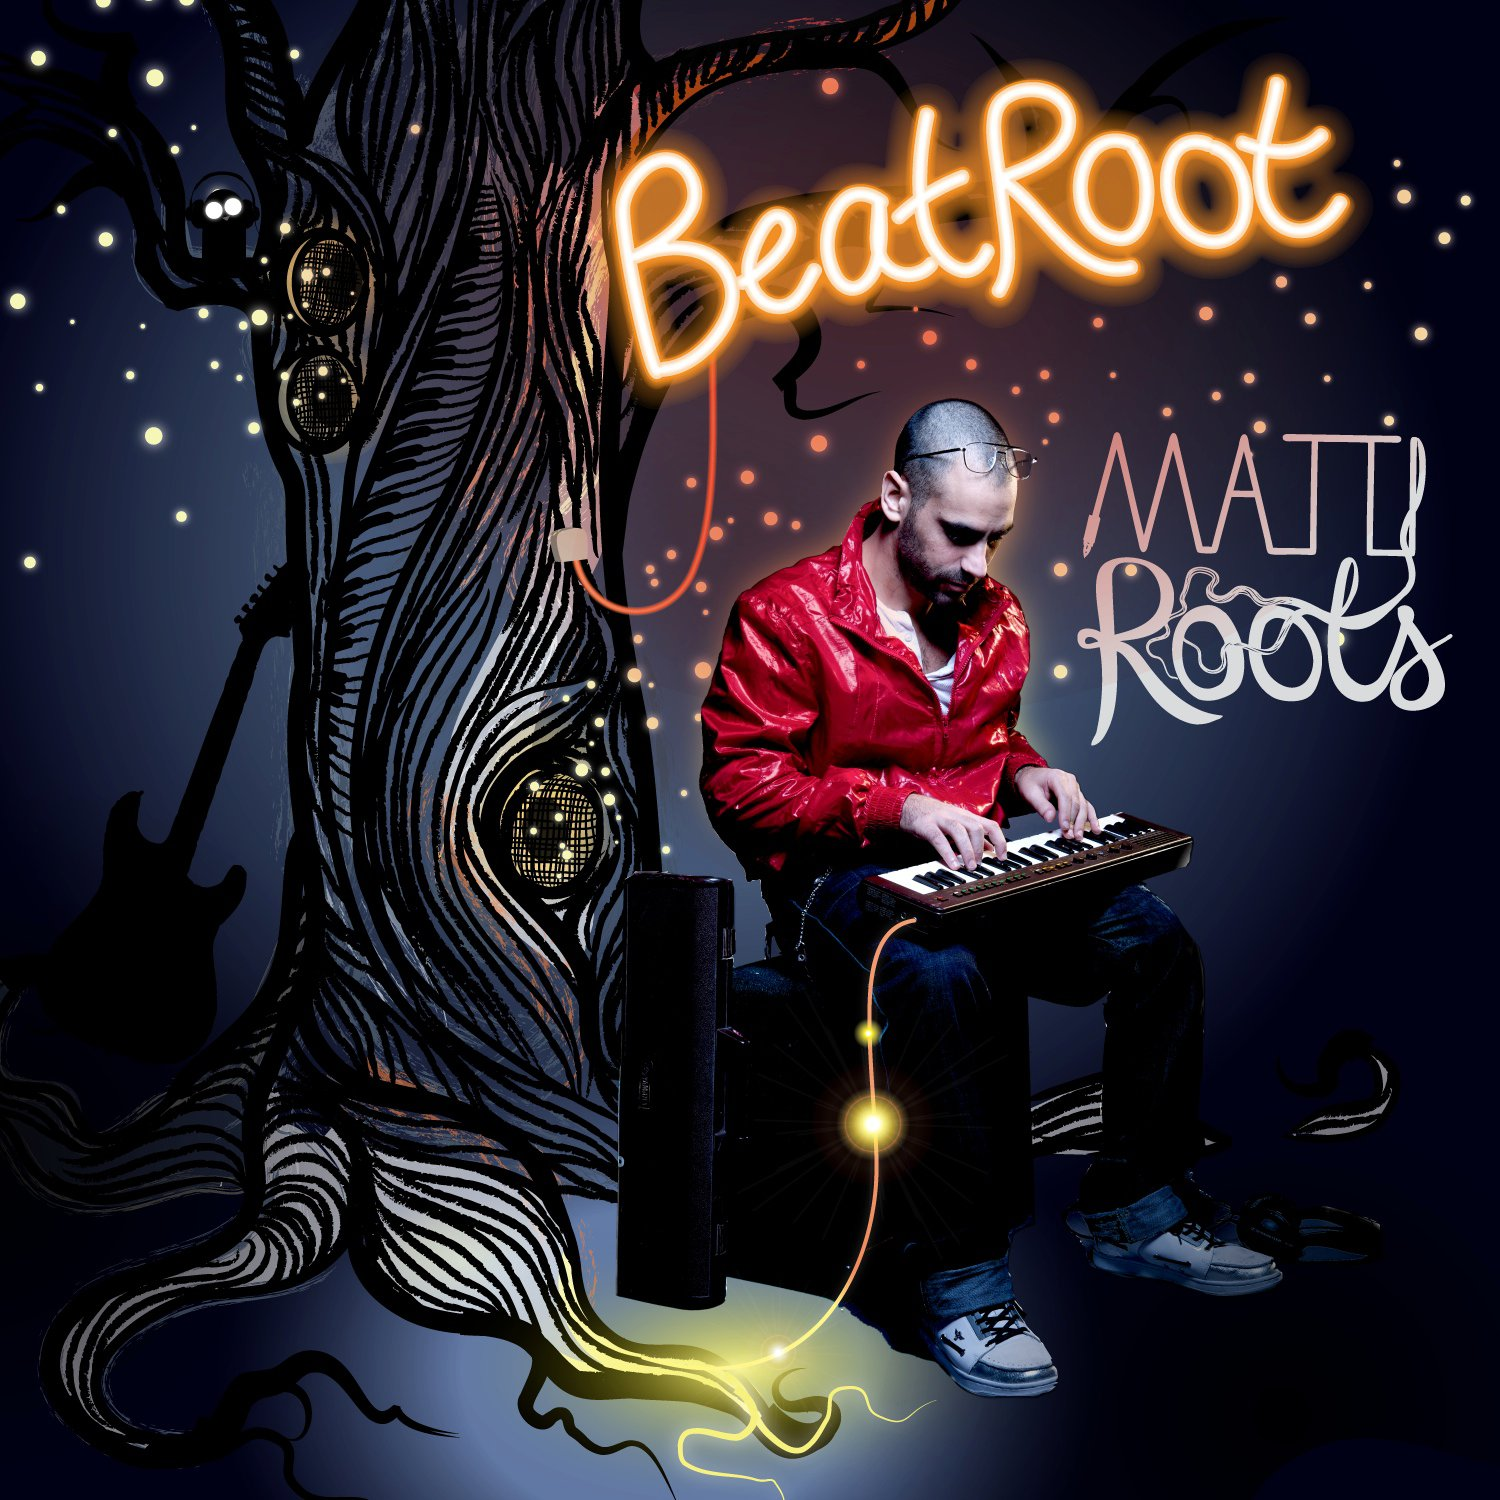 MATTI ROOTS - BEATROOT